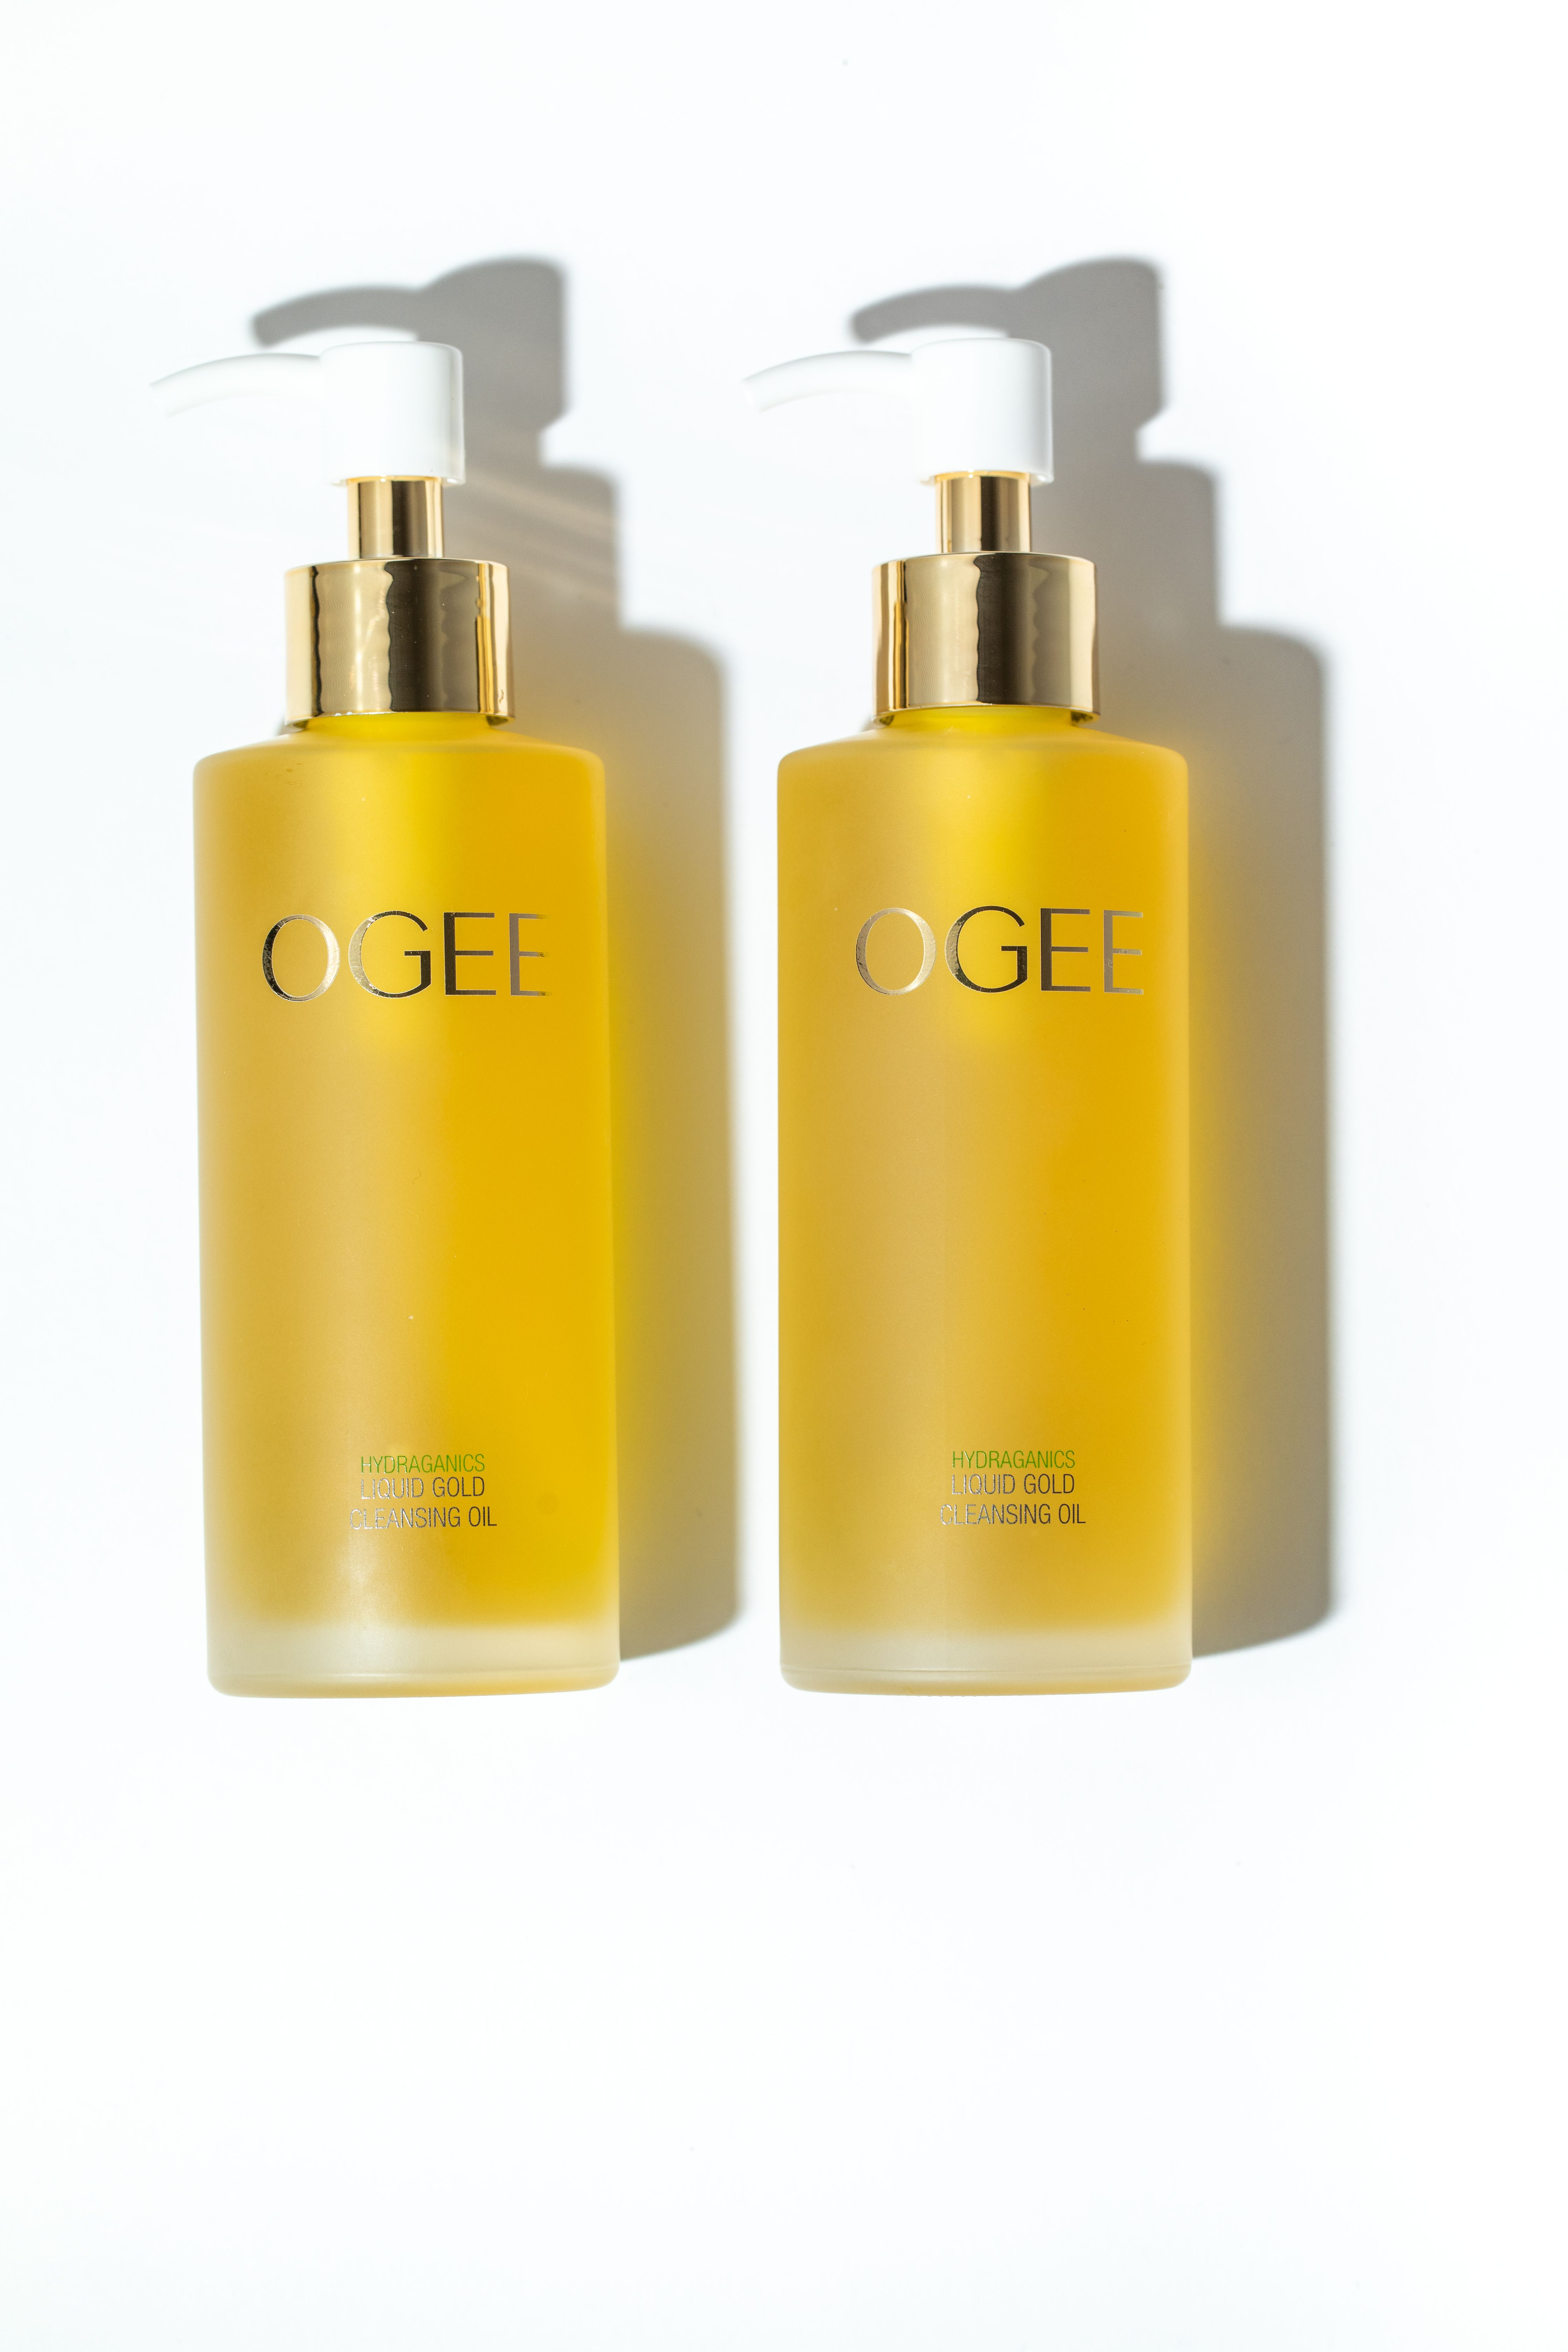 Liquid Gold Cleansing Oil Cleansing oil, Oil makeup